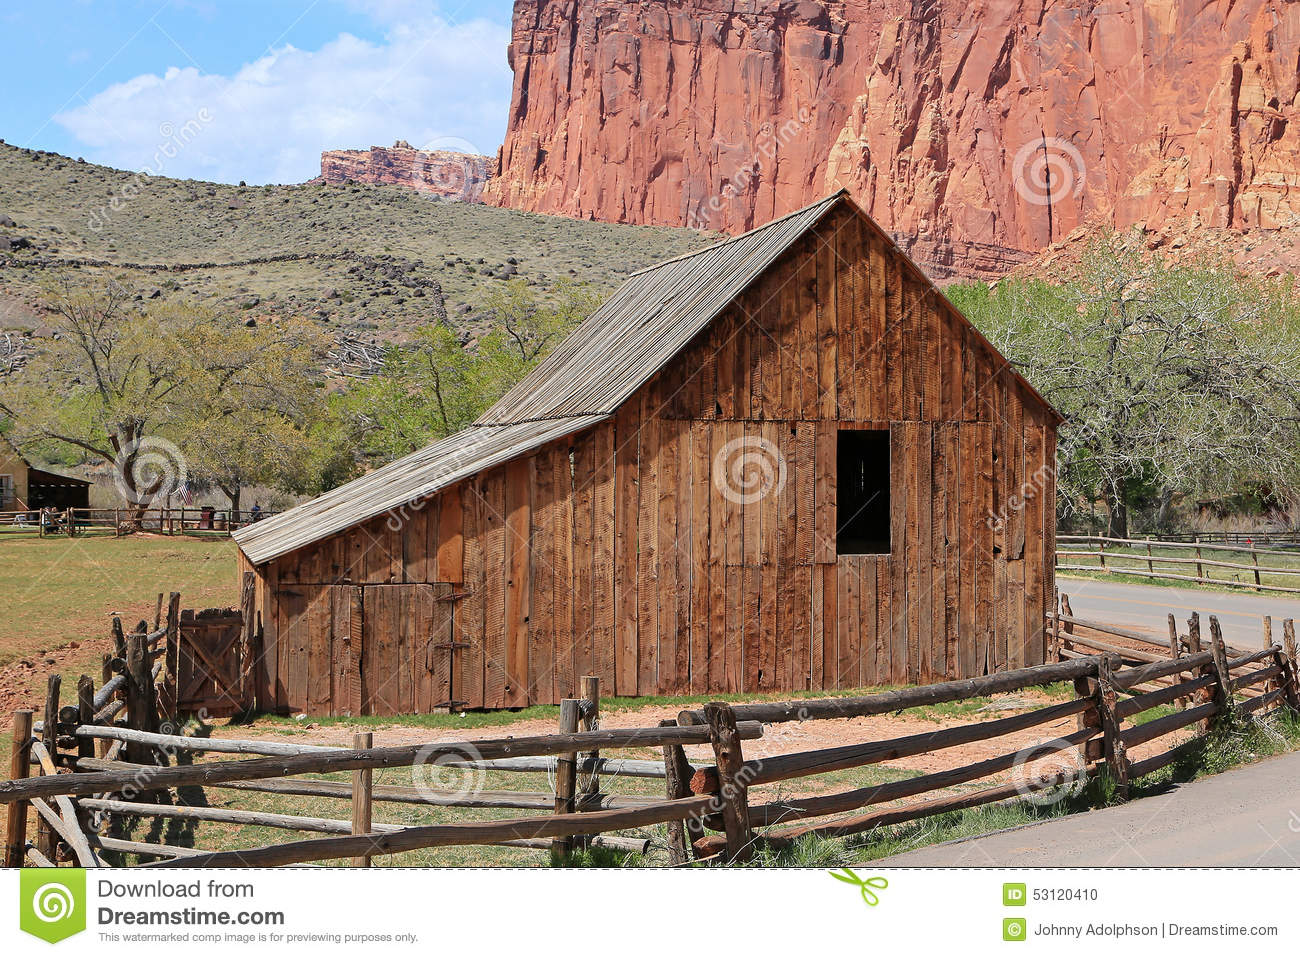 Vintage wooden barn and fence.